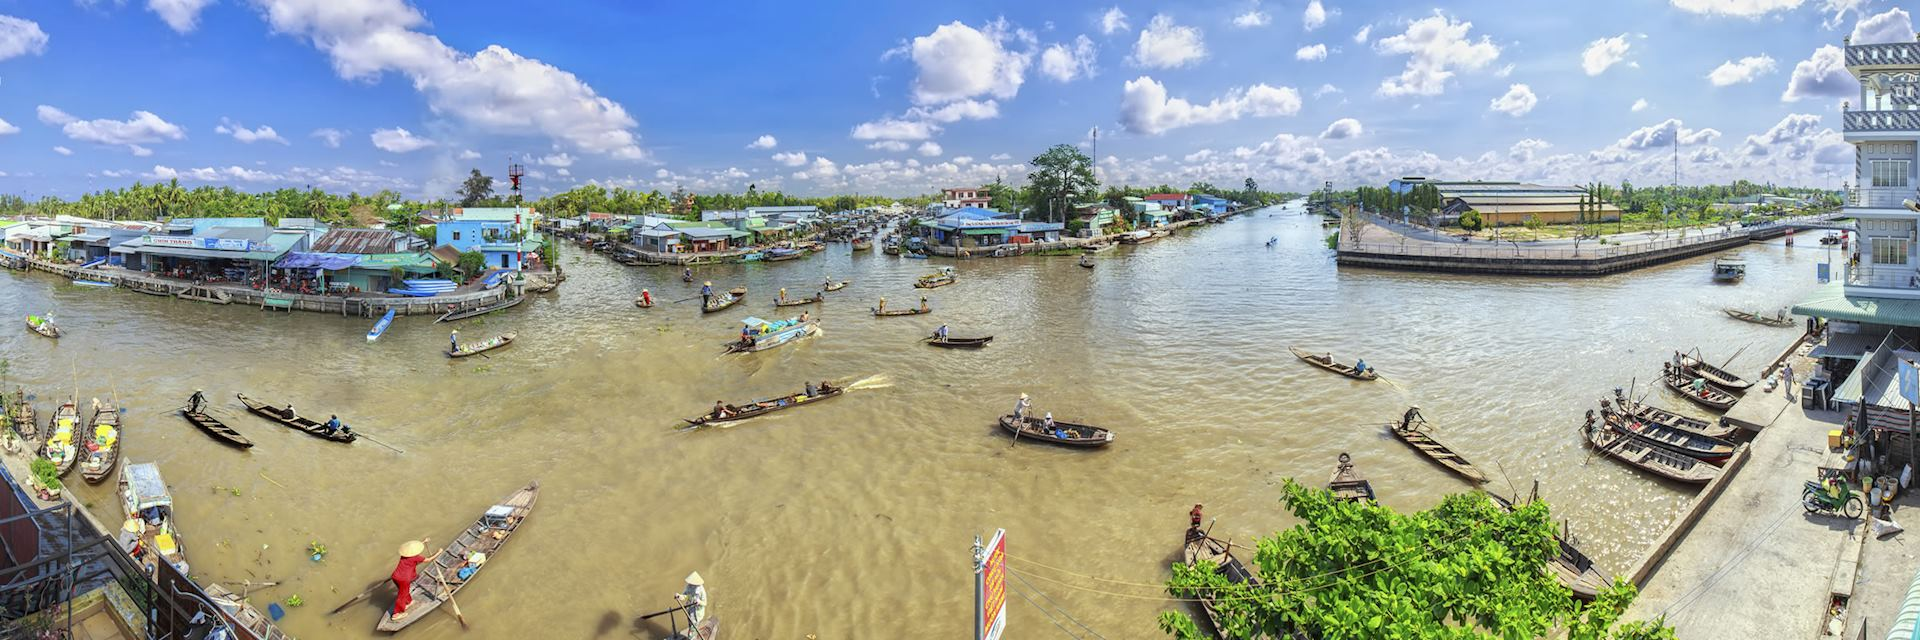 Floating market on the Mekong Delta, Vietnam